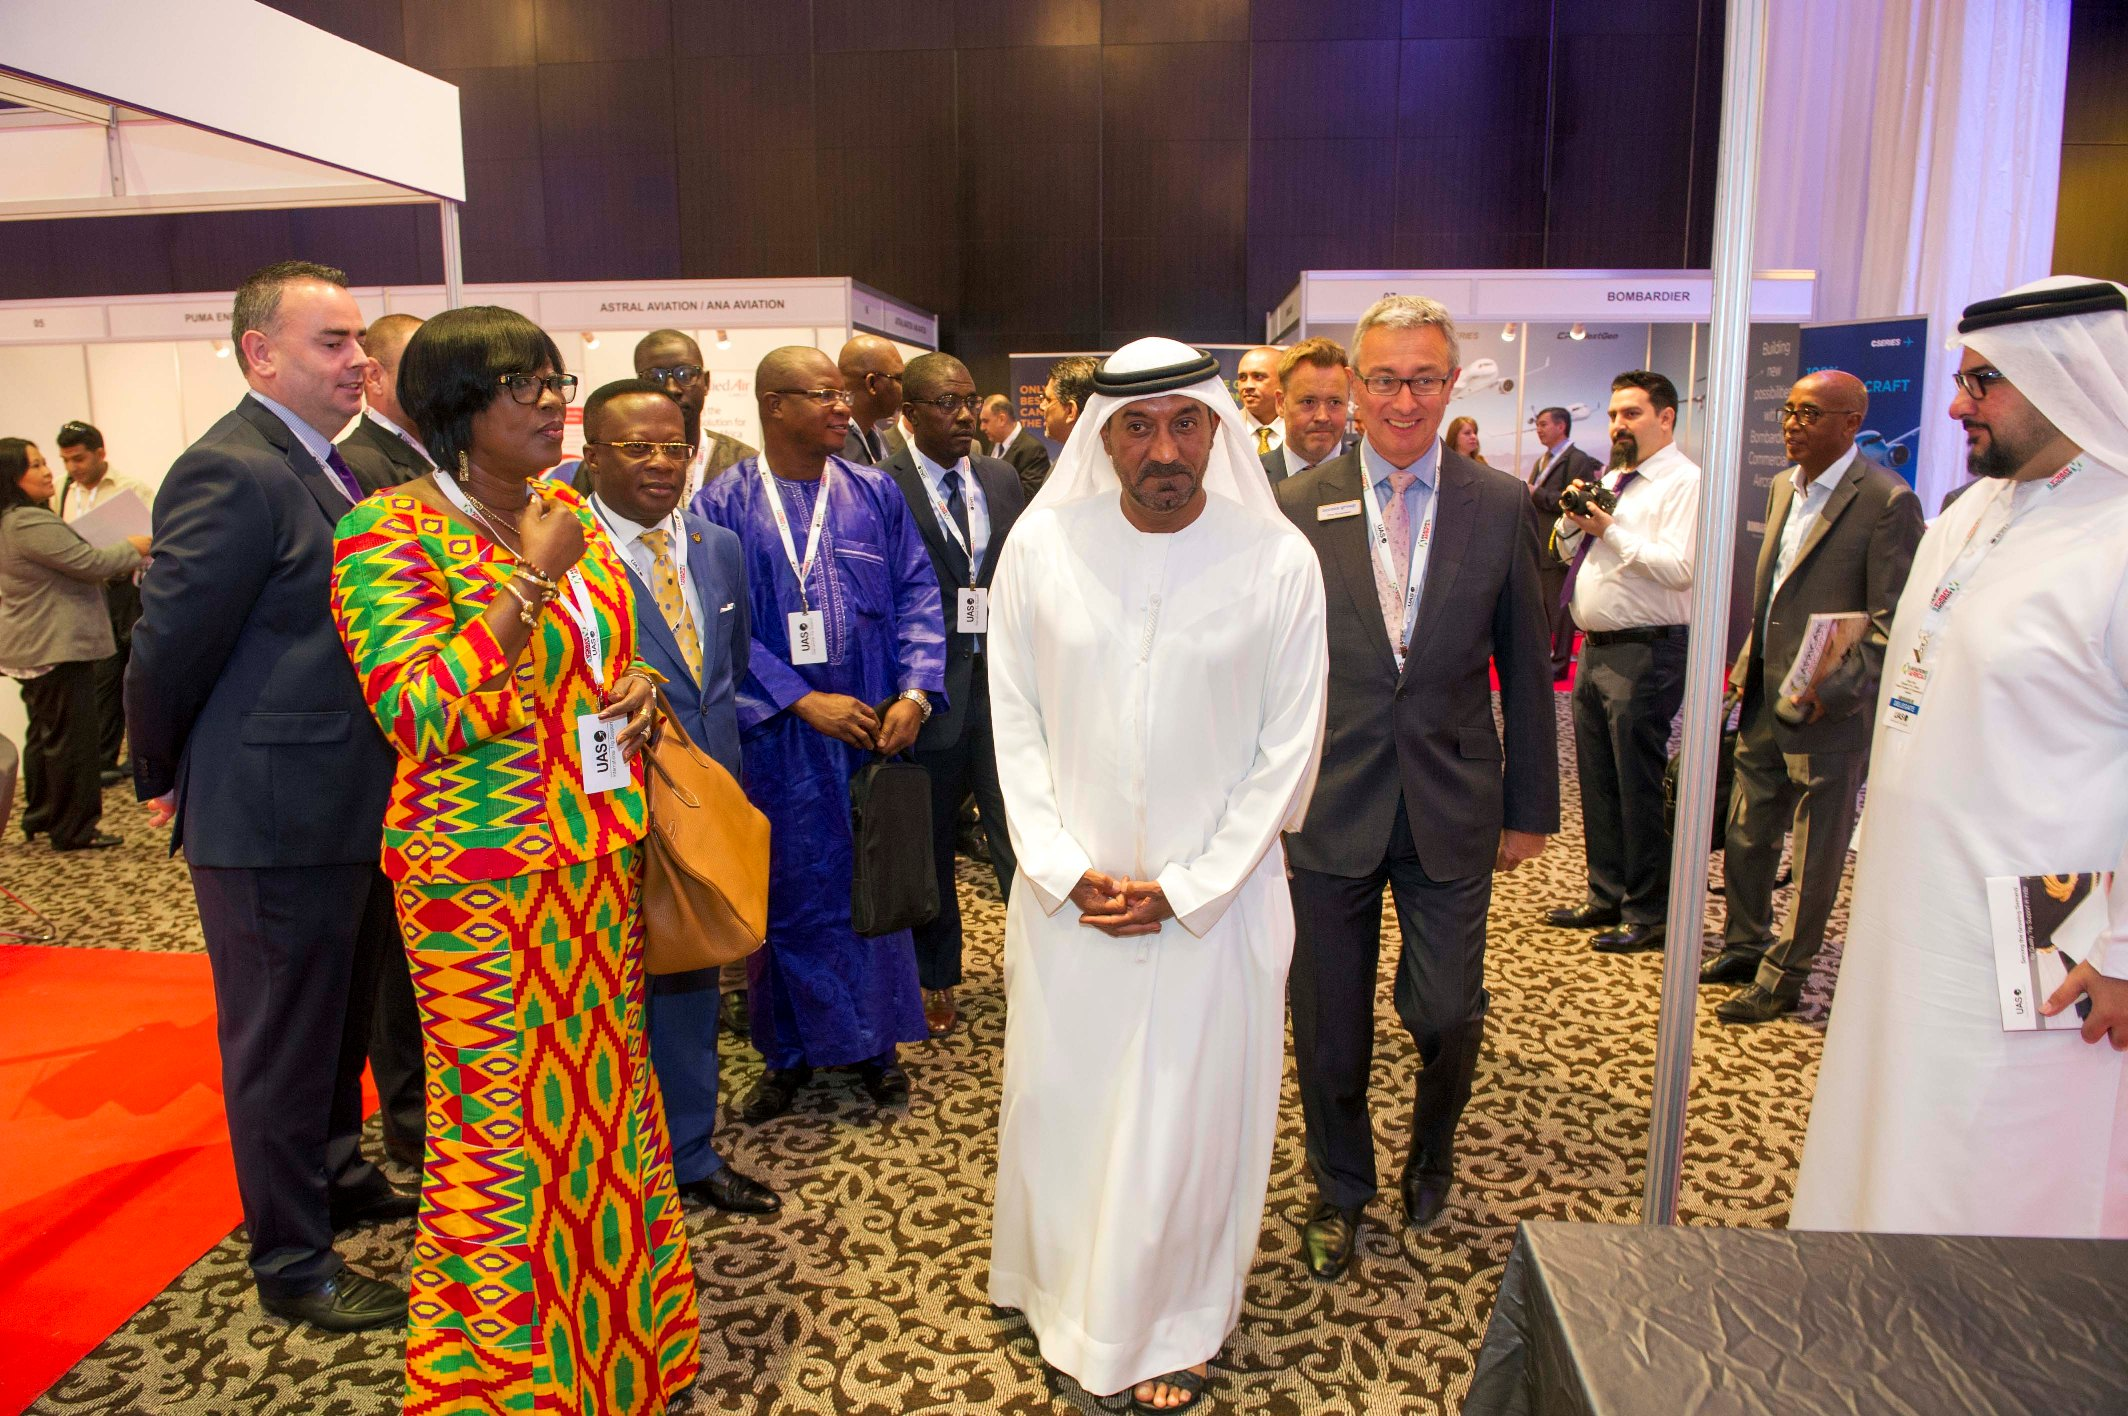 Aviation Africa event 2015 gets under way in Dubai